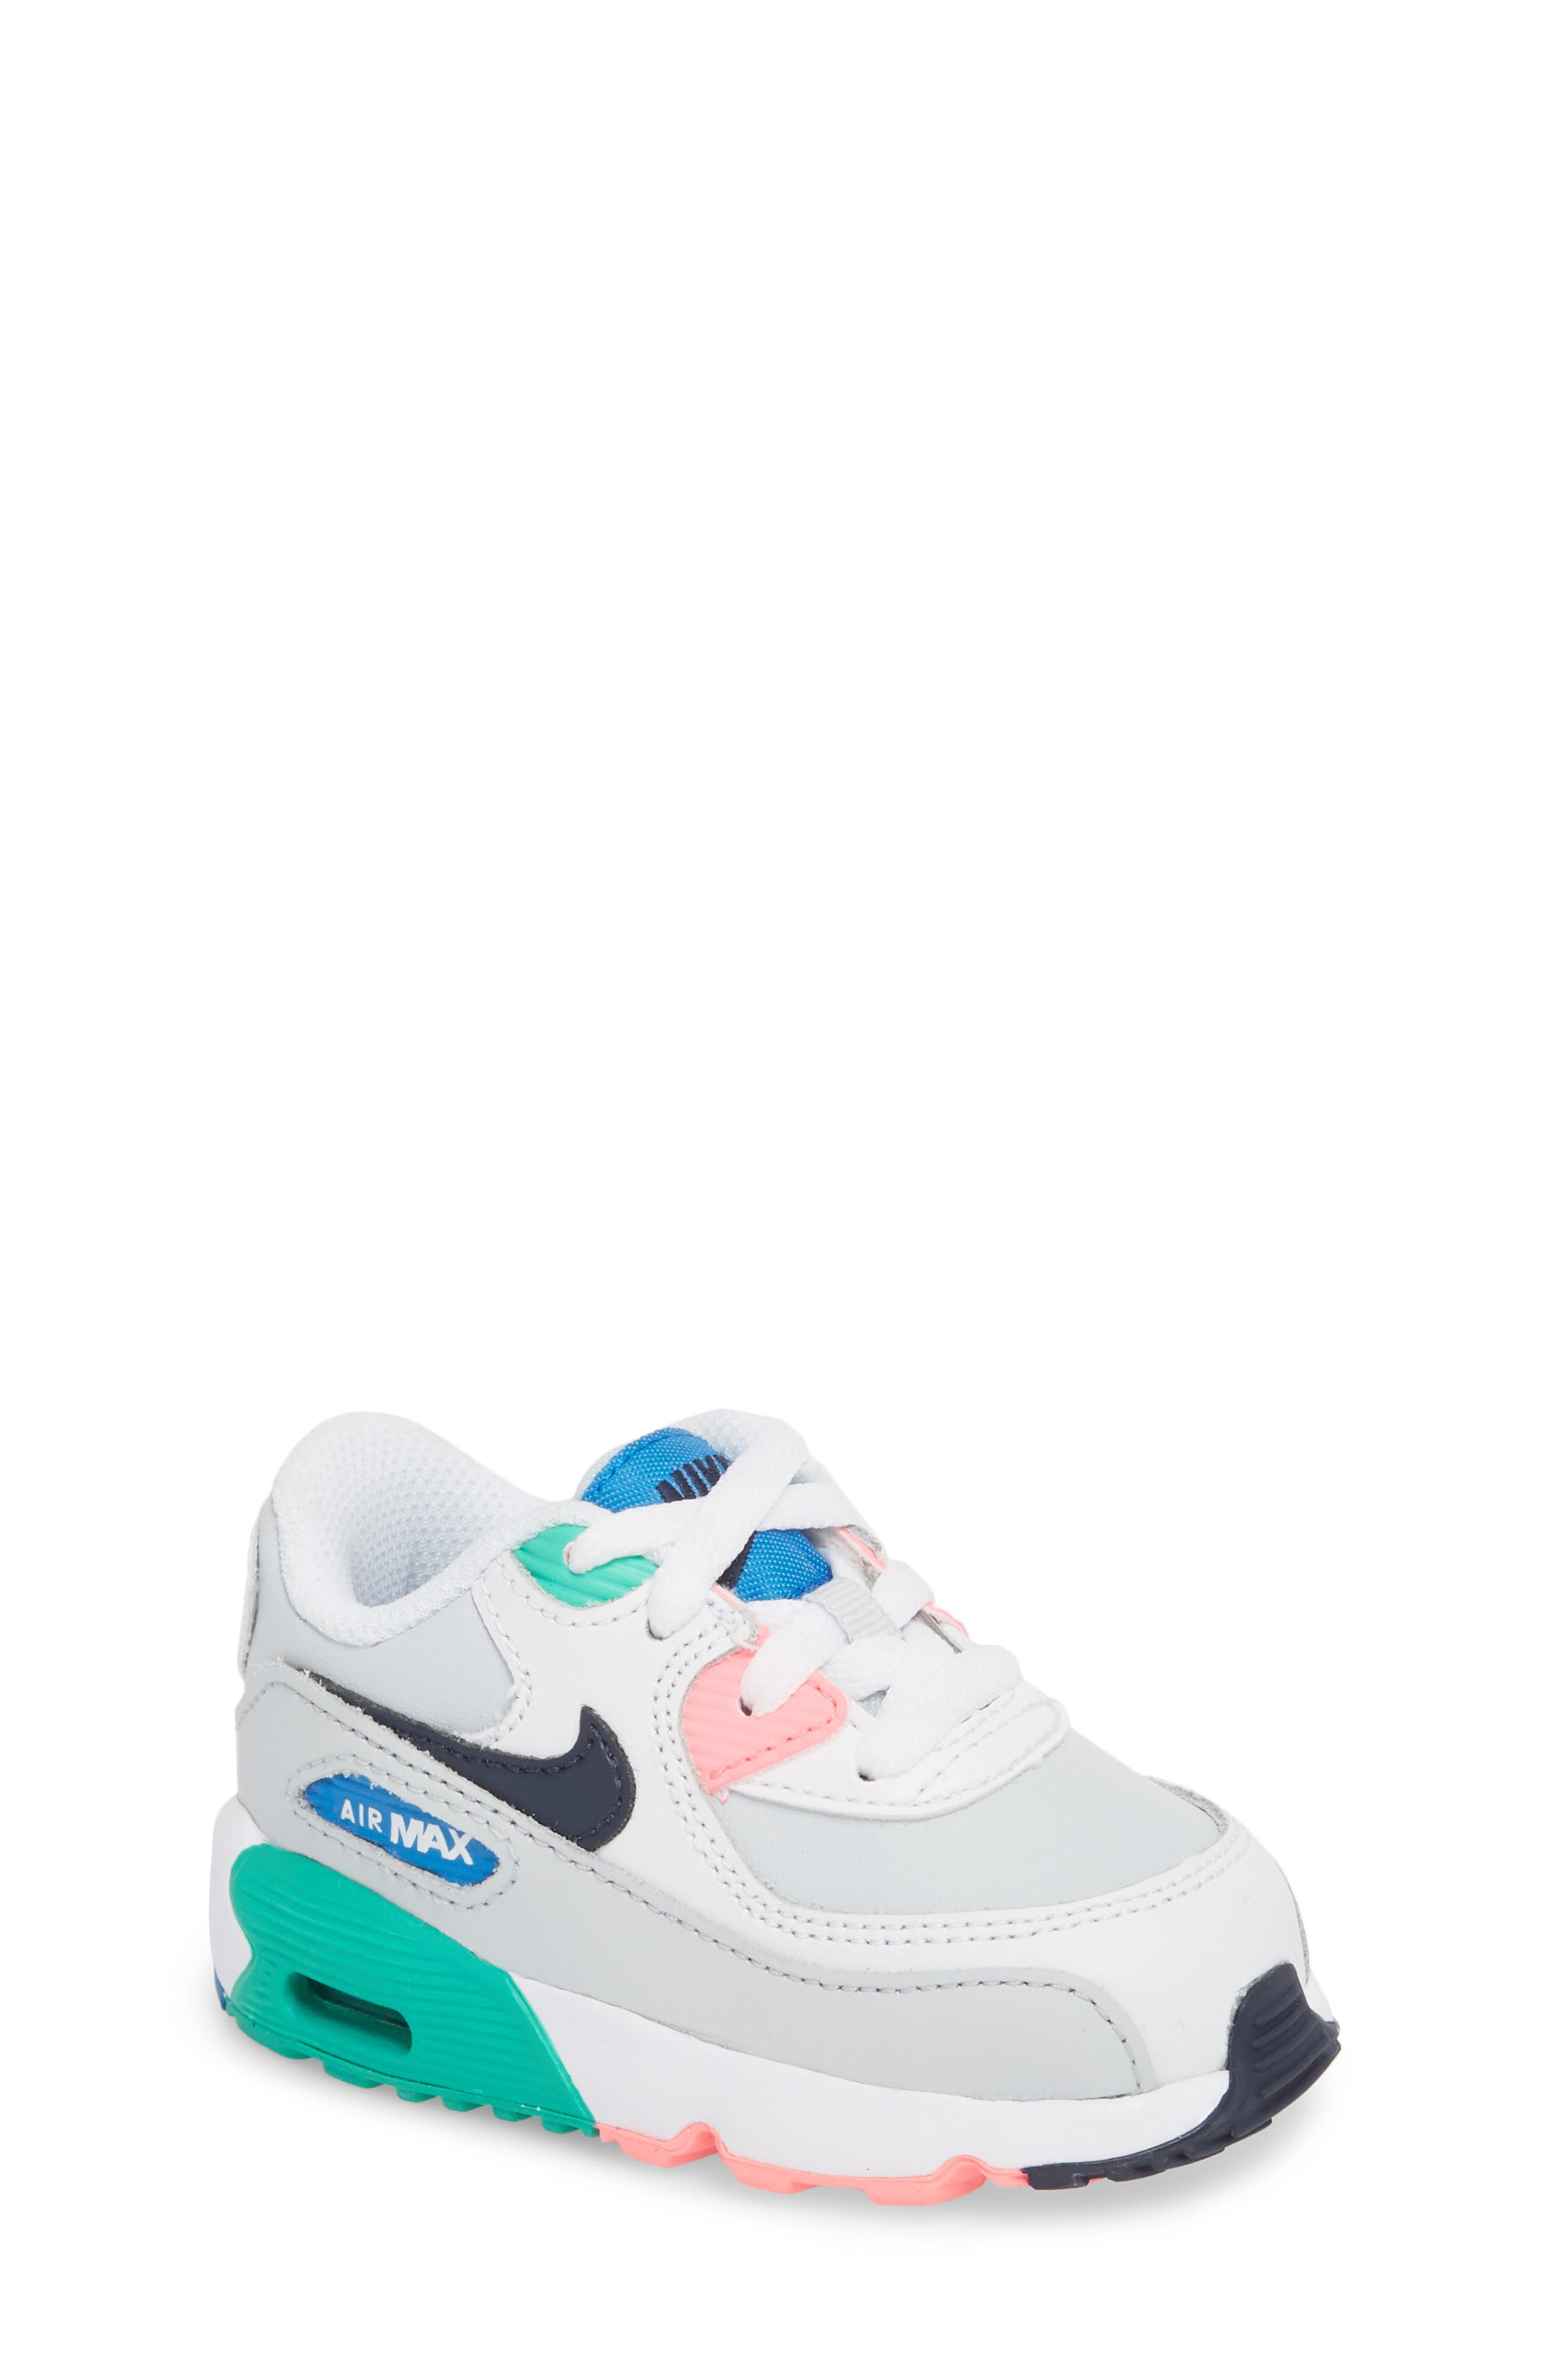 Air Max 90 Sneaker,                         Main,                         color, White/ Obsidian/ Blue Nebula